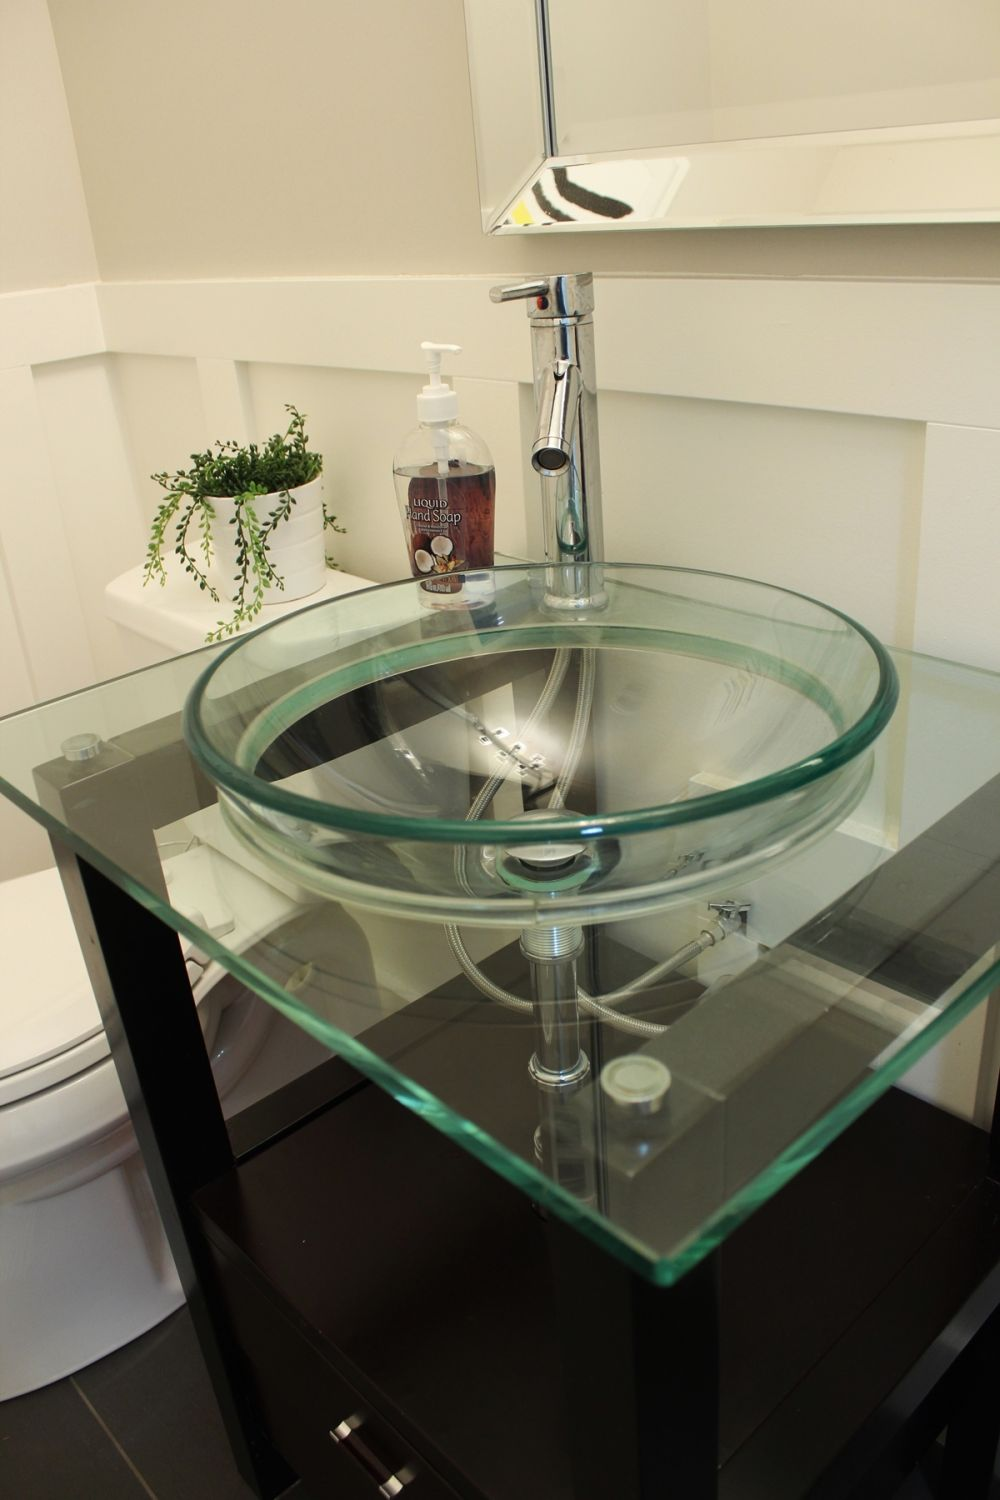 Bathroom with glass bowl sink.